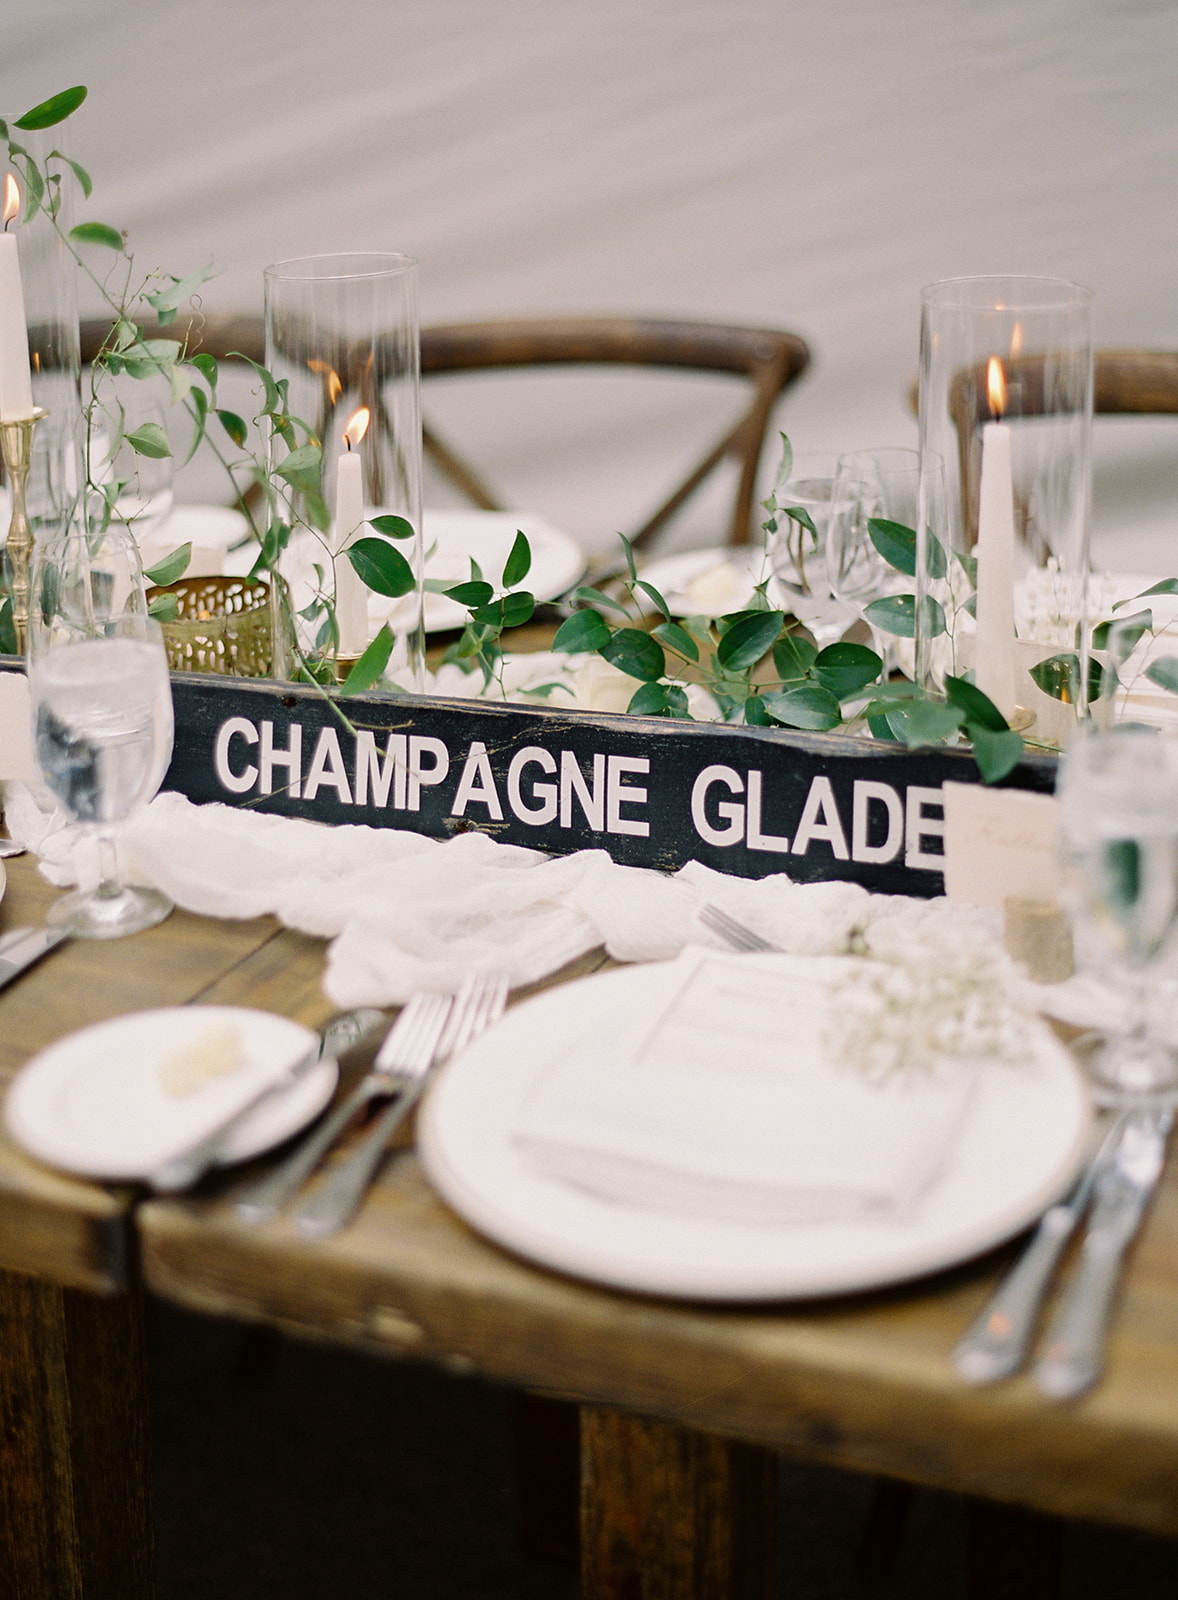 creative name ski signs reception tables